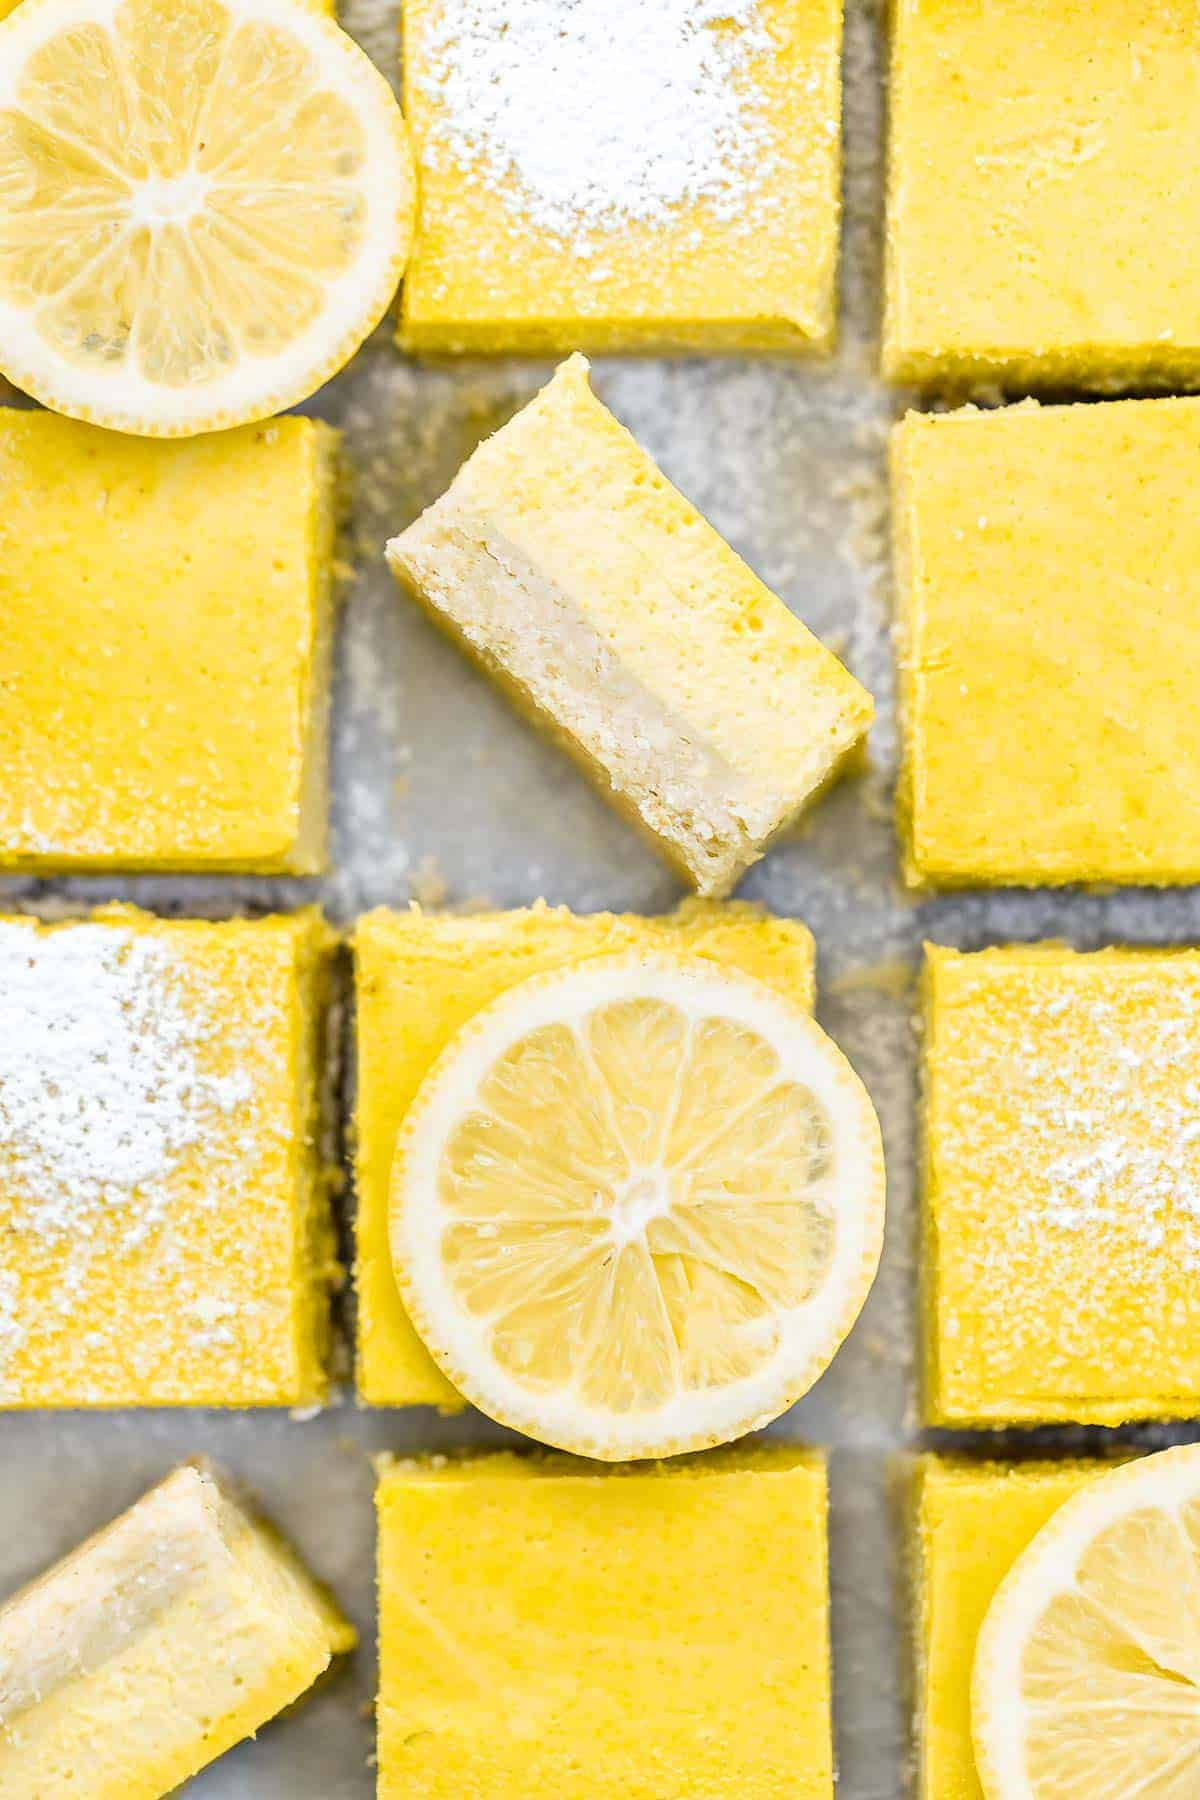 Overhead image of the bars with lemon slices on top.